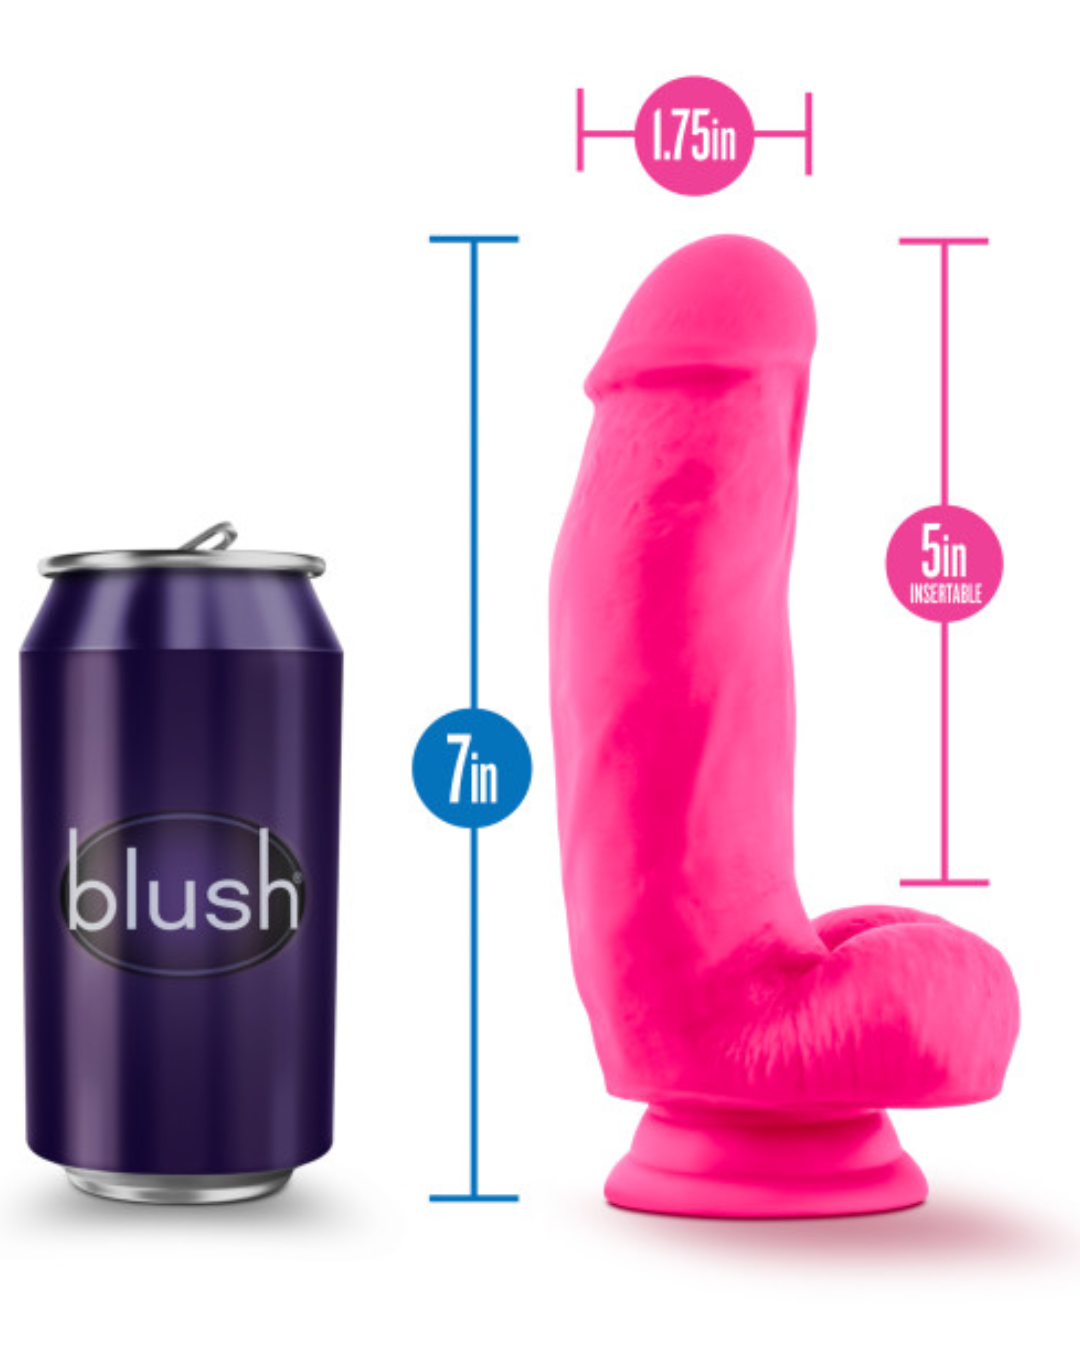 Neo Elite 7 Inch Dual Density Silicone Dildo with Balls by Blush - Neon Pink showing the dildos measurements